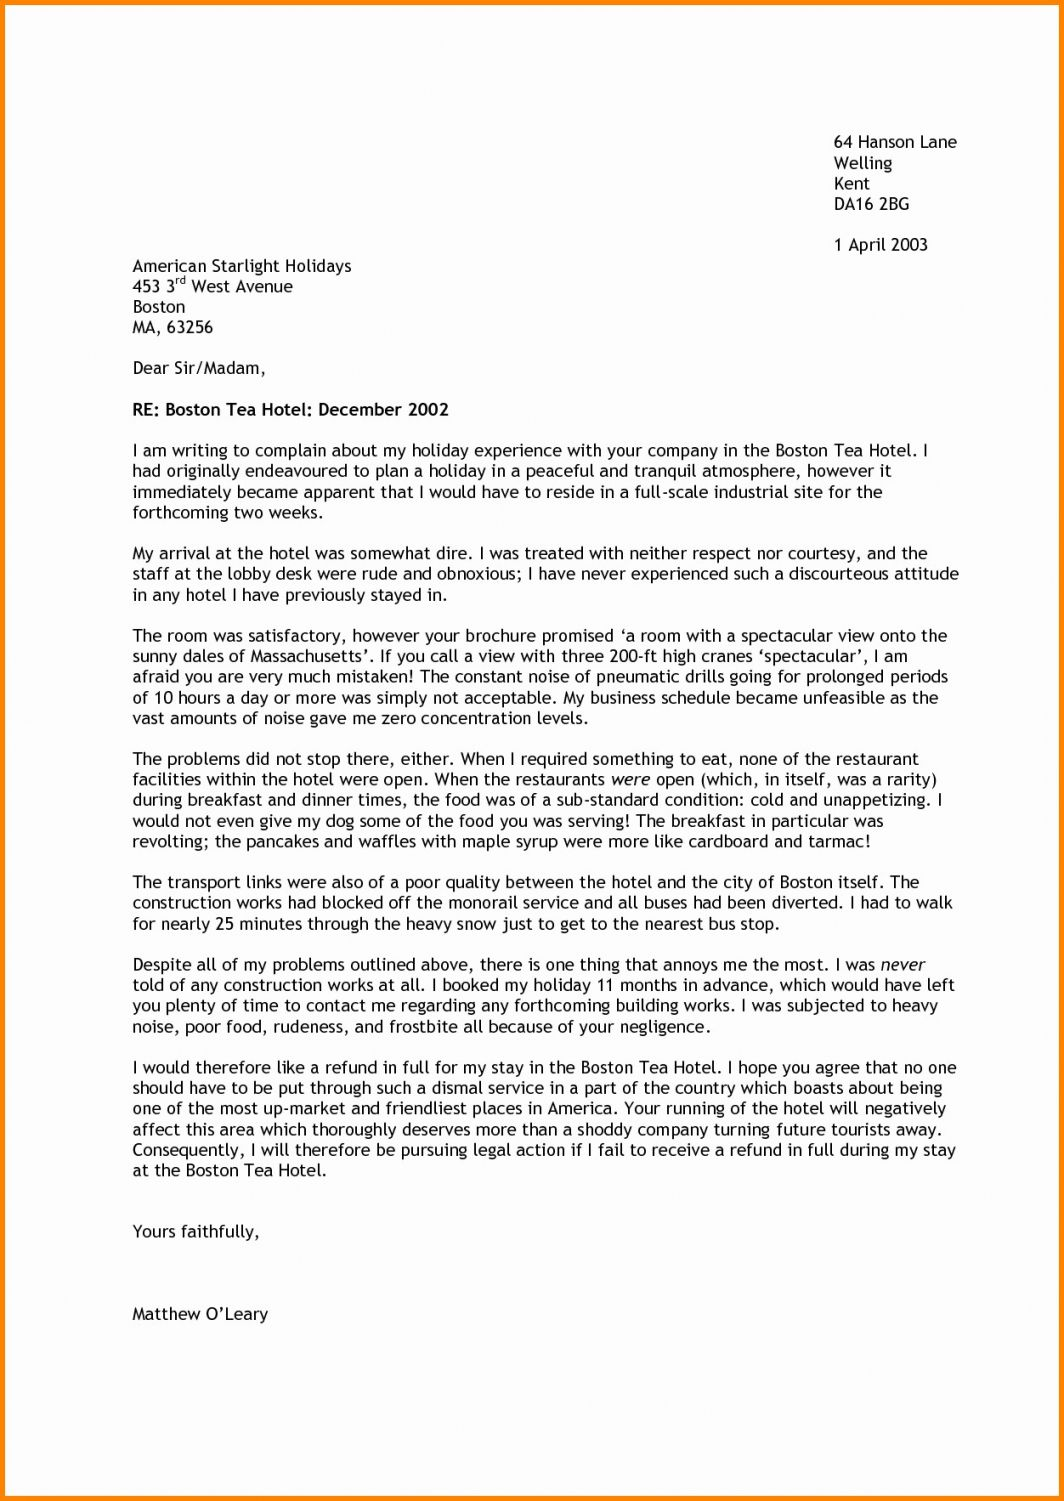 Explore Our Image of Medical Negligence Complaint Letter